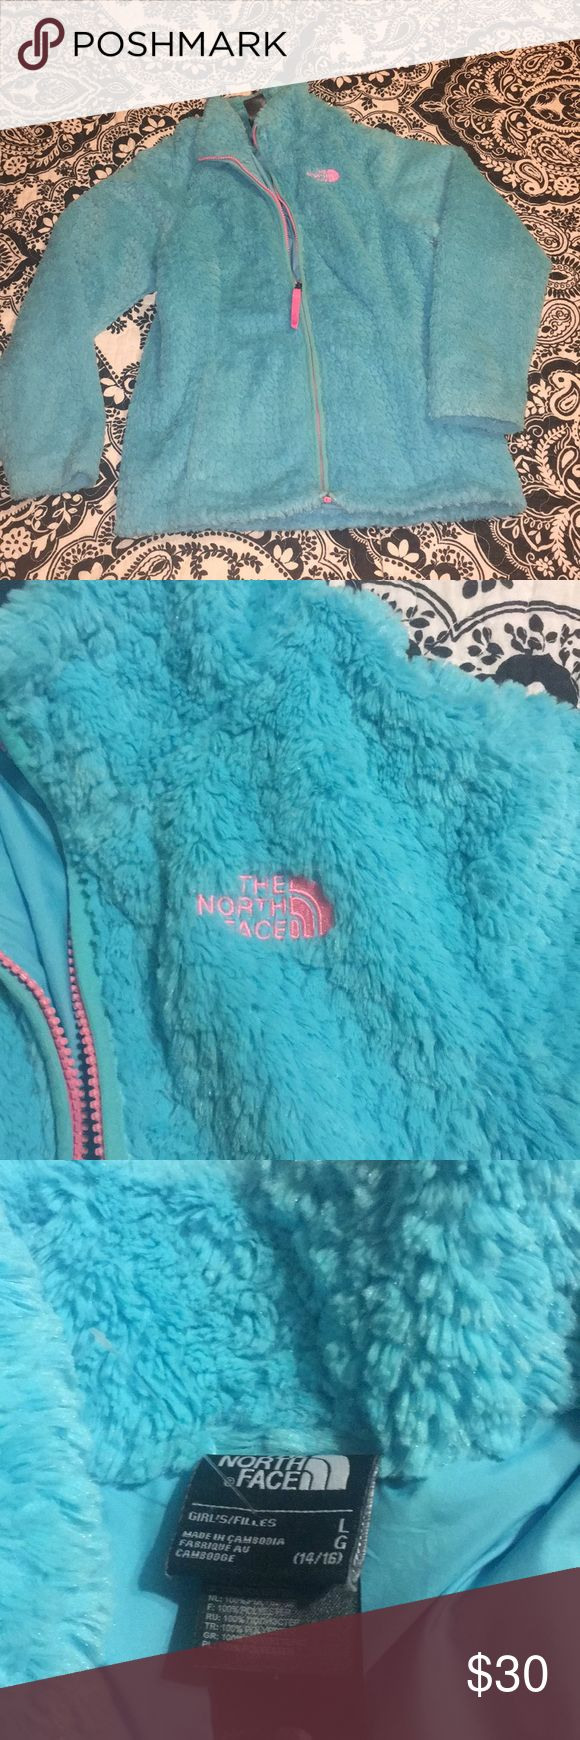 Kids North Face jacket size L Kids soft and fuzzy north face jacket Great condition! The North Face Jackets & Coats